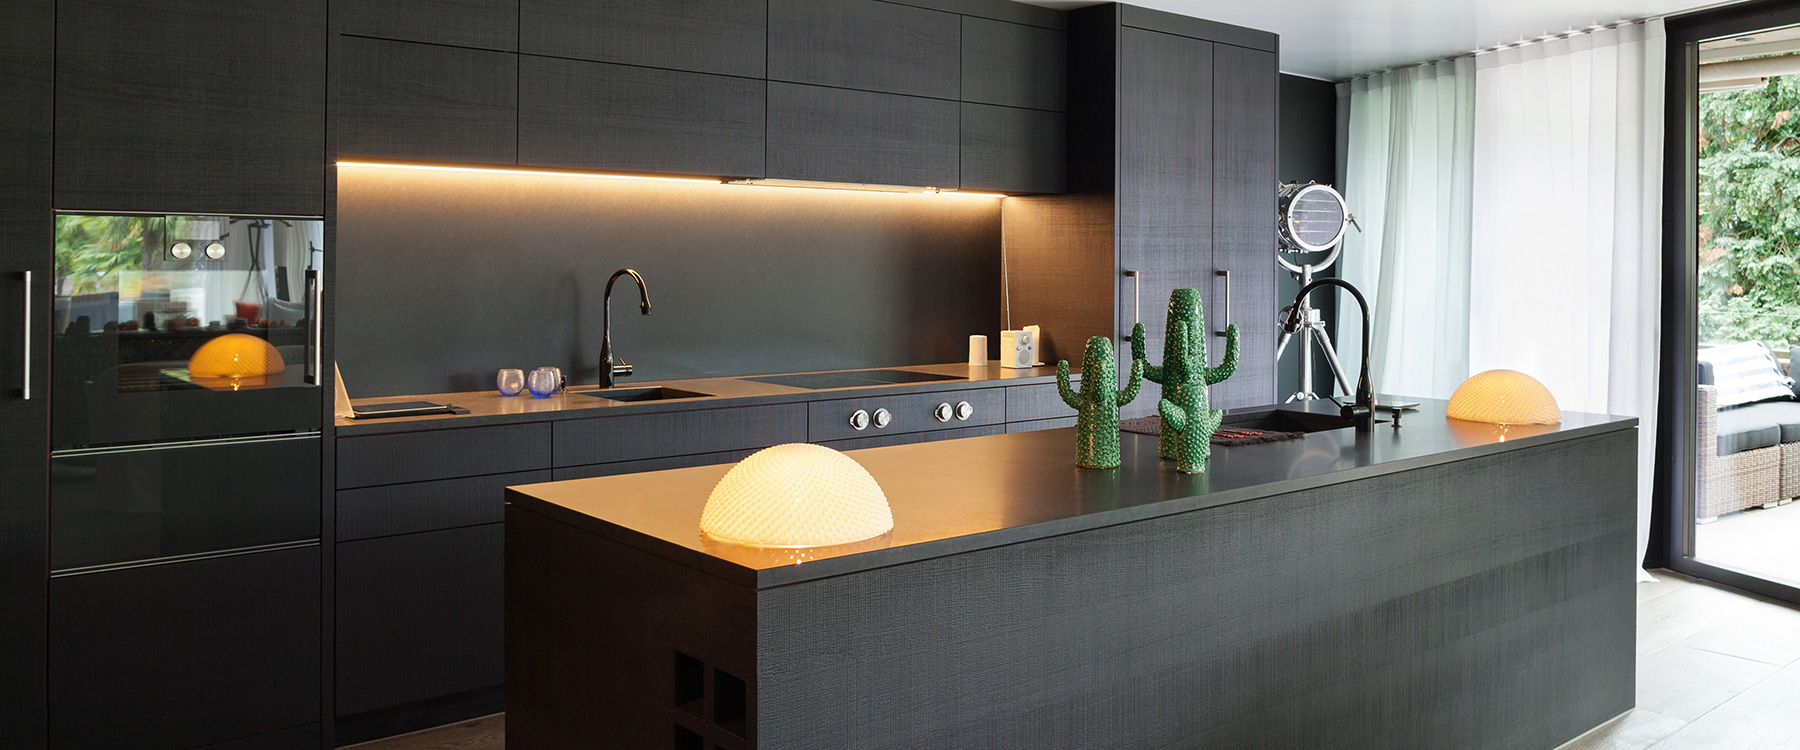 kitchen designers christchurch affordable kitchen designers prime kitchens christchurch 602